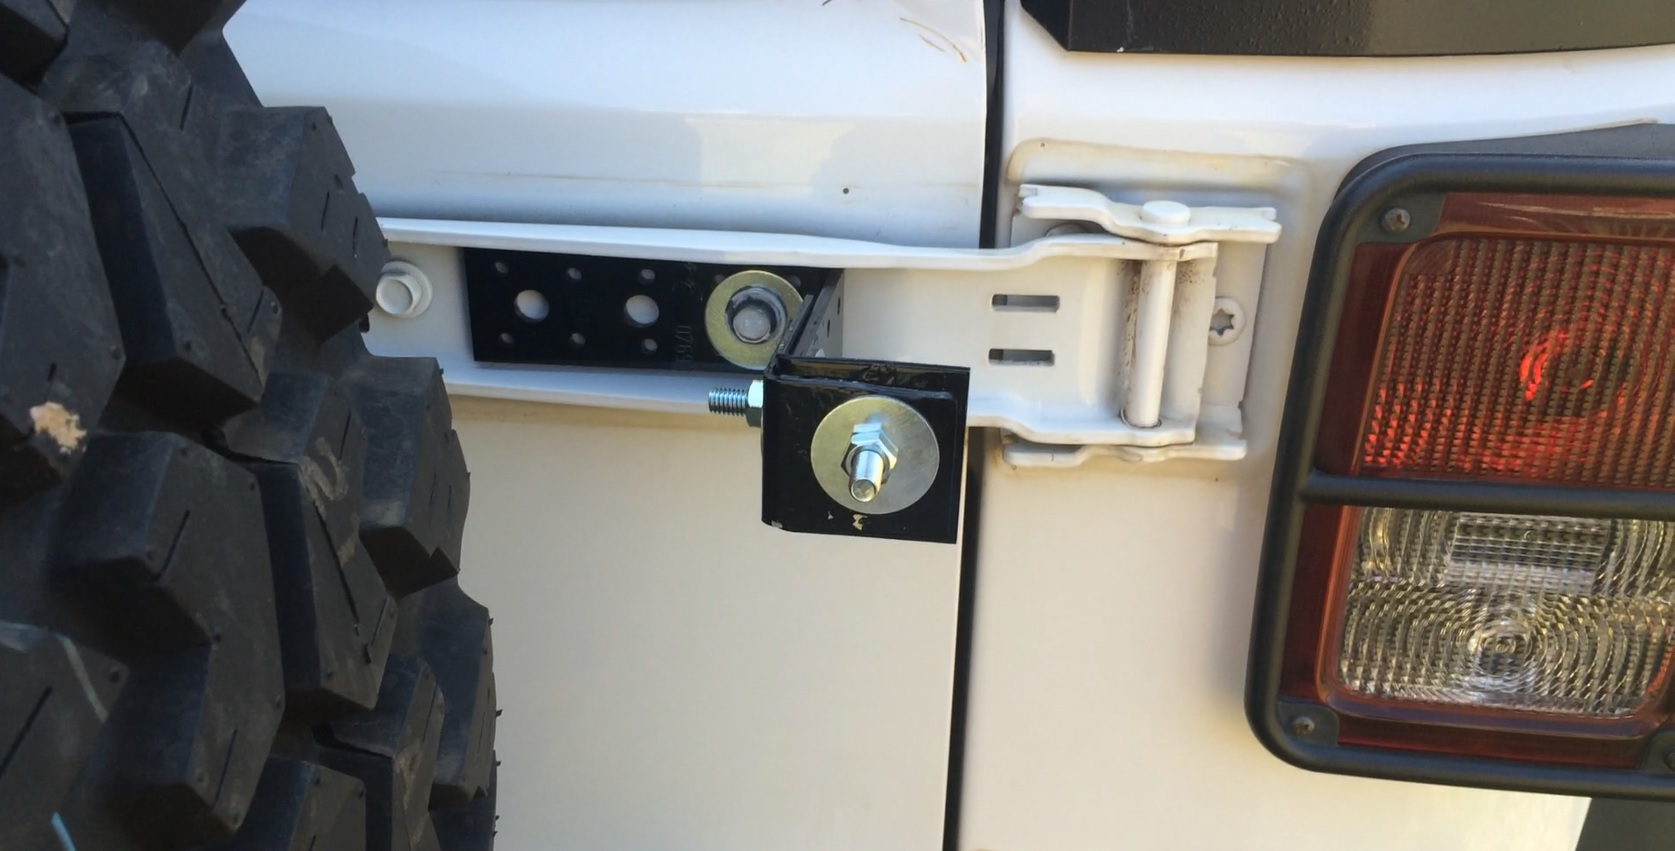 Picture of Jerrycan Mount With Parts Bought From a Hardware Store.